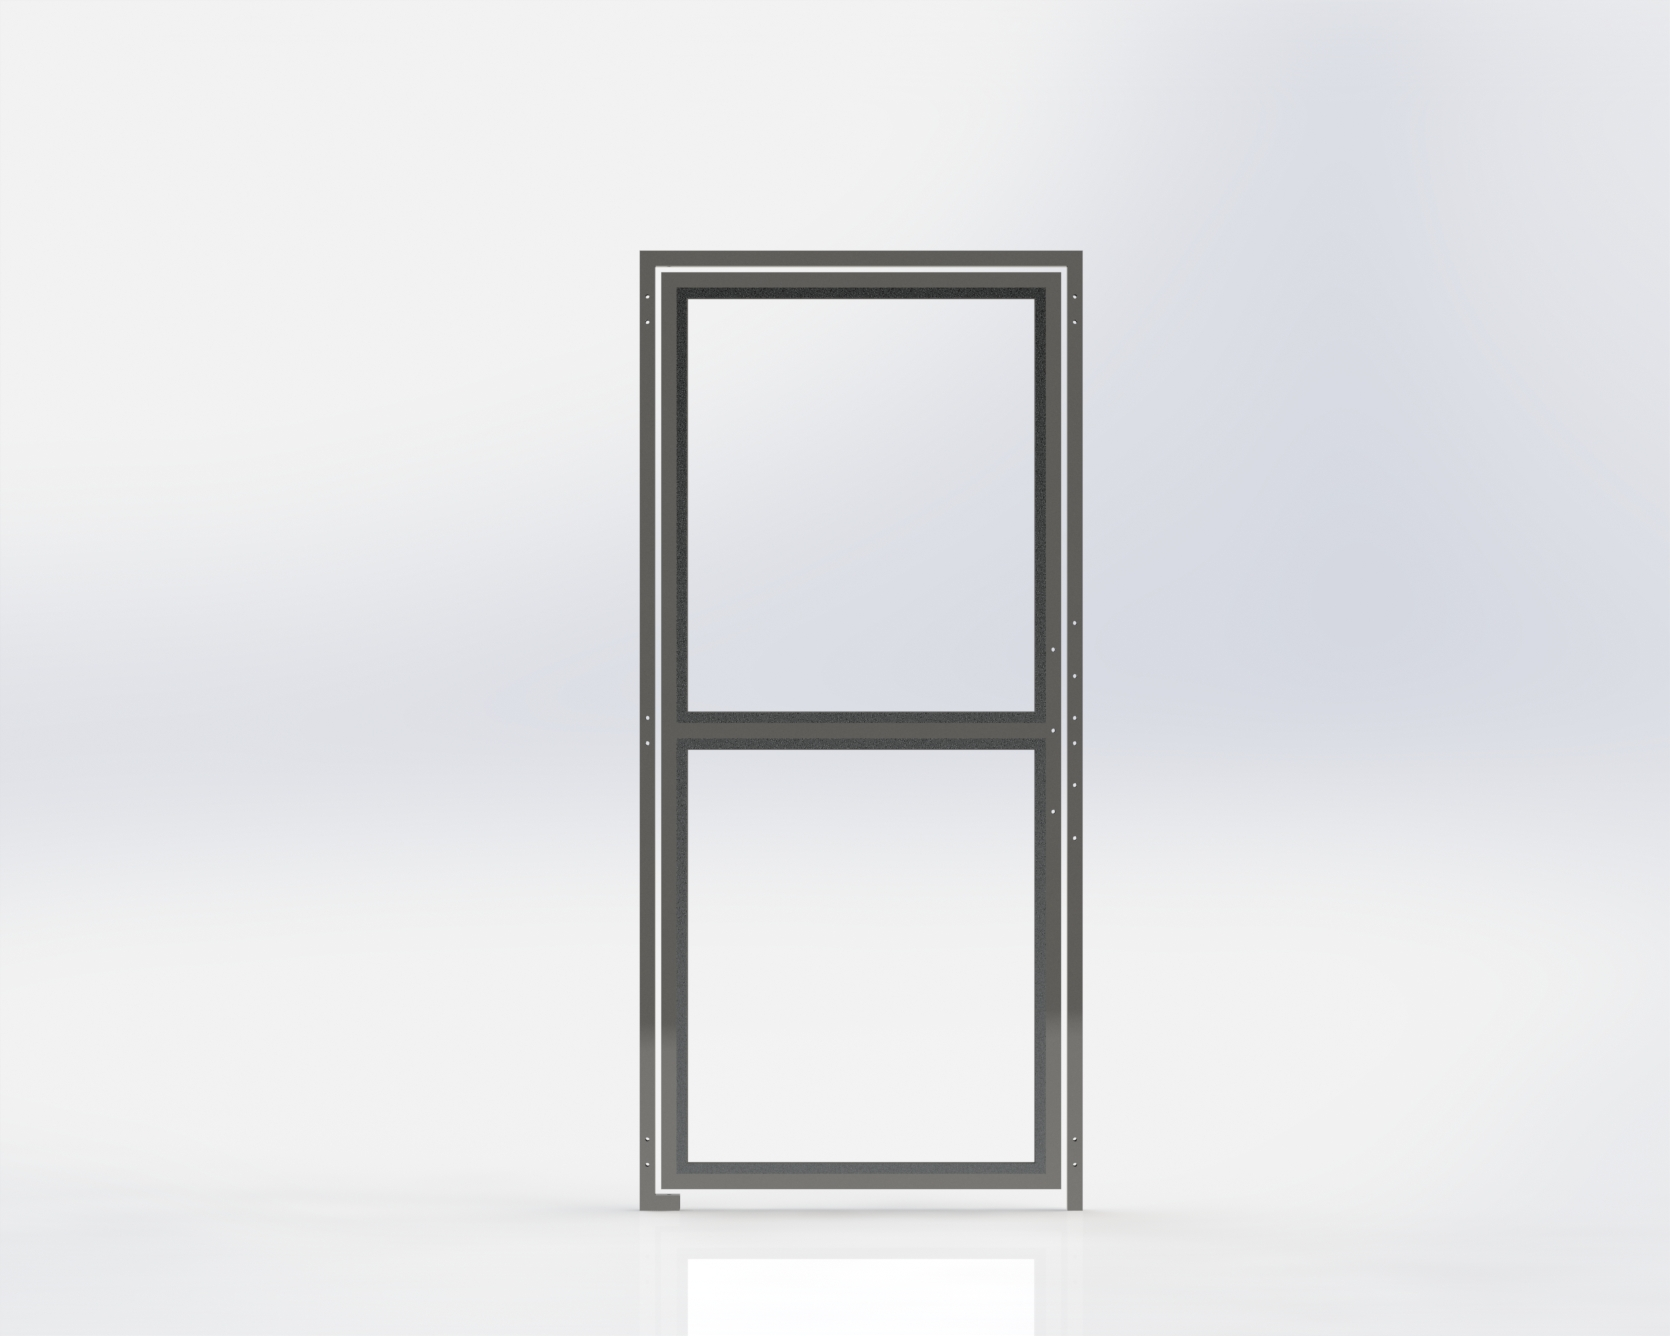 Run Gate,All Glass,914.4mm Wide x1981.2mm High,Right Hand